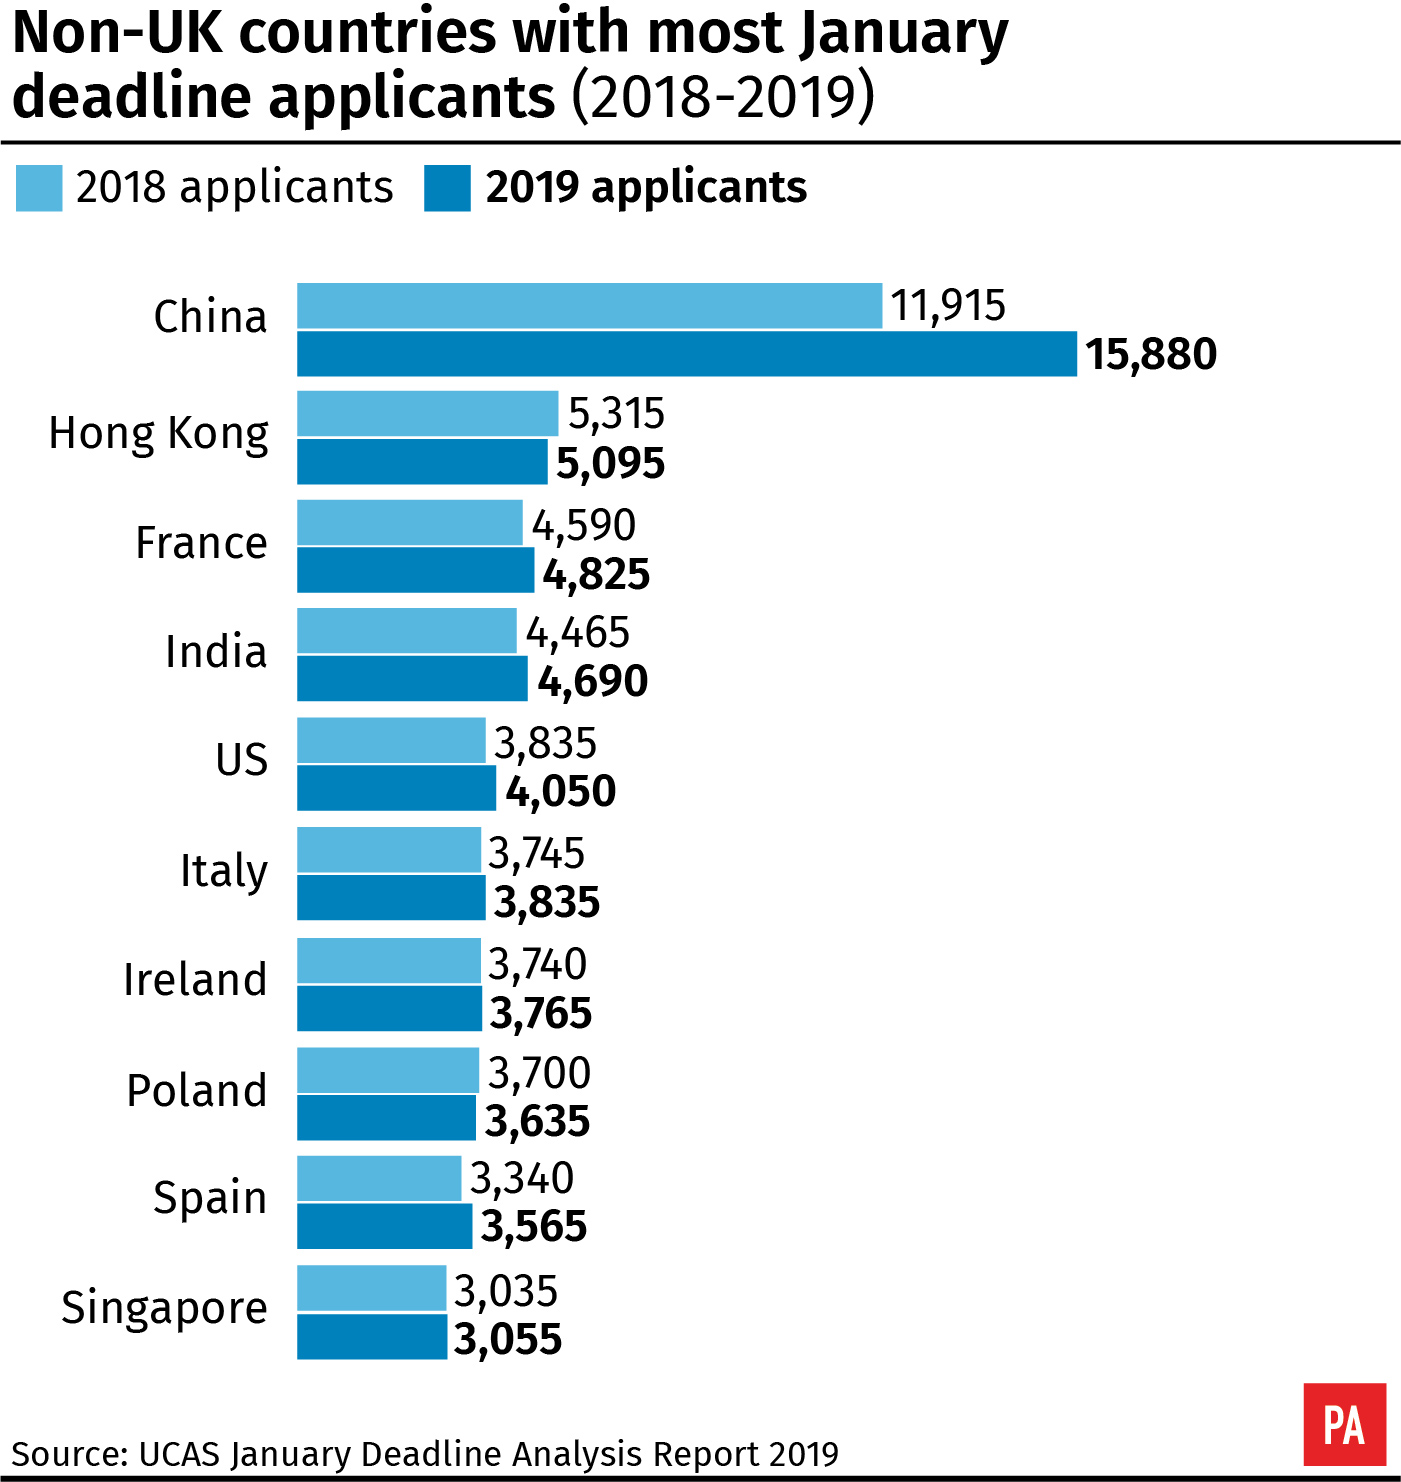 Non-UK countries with most January deadline applicants